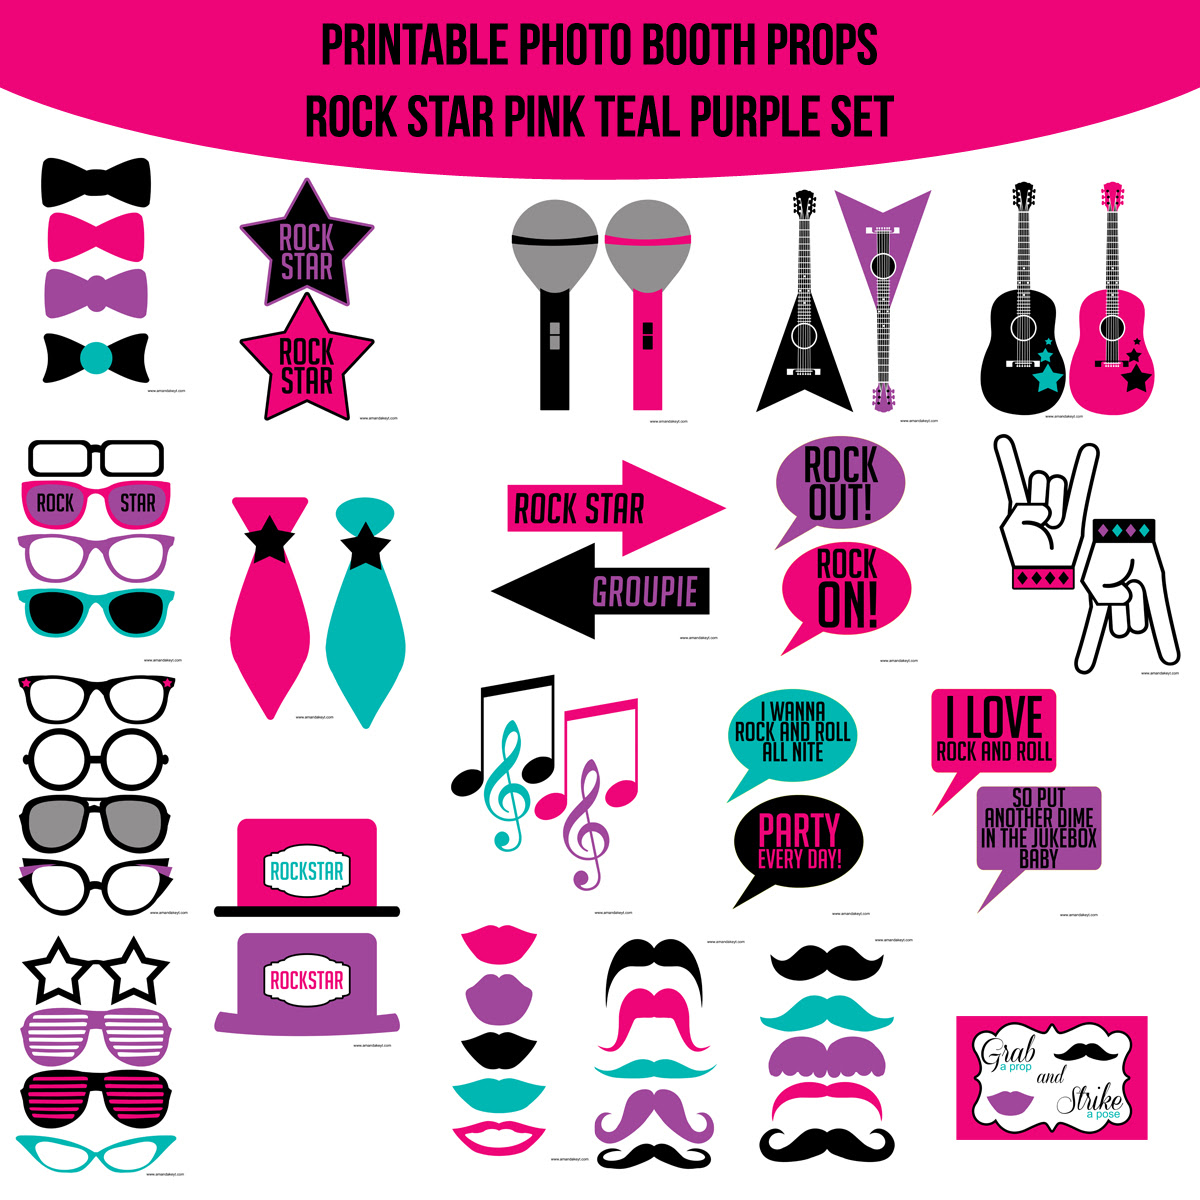 Instant Download Rock Star Pink Teal Purple Printable Photo Booth